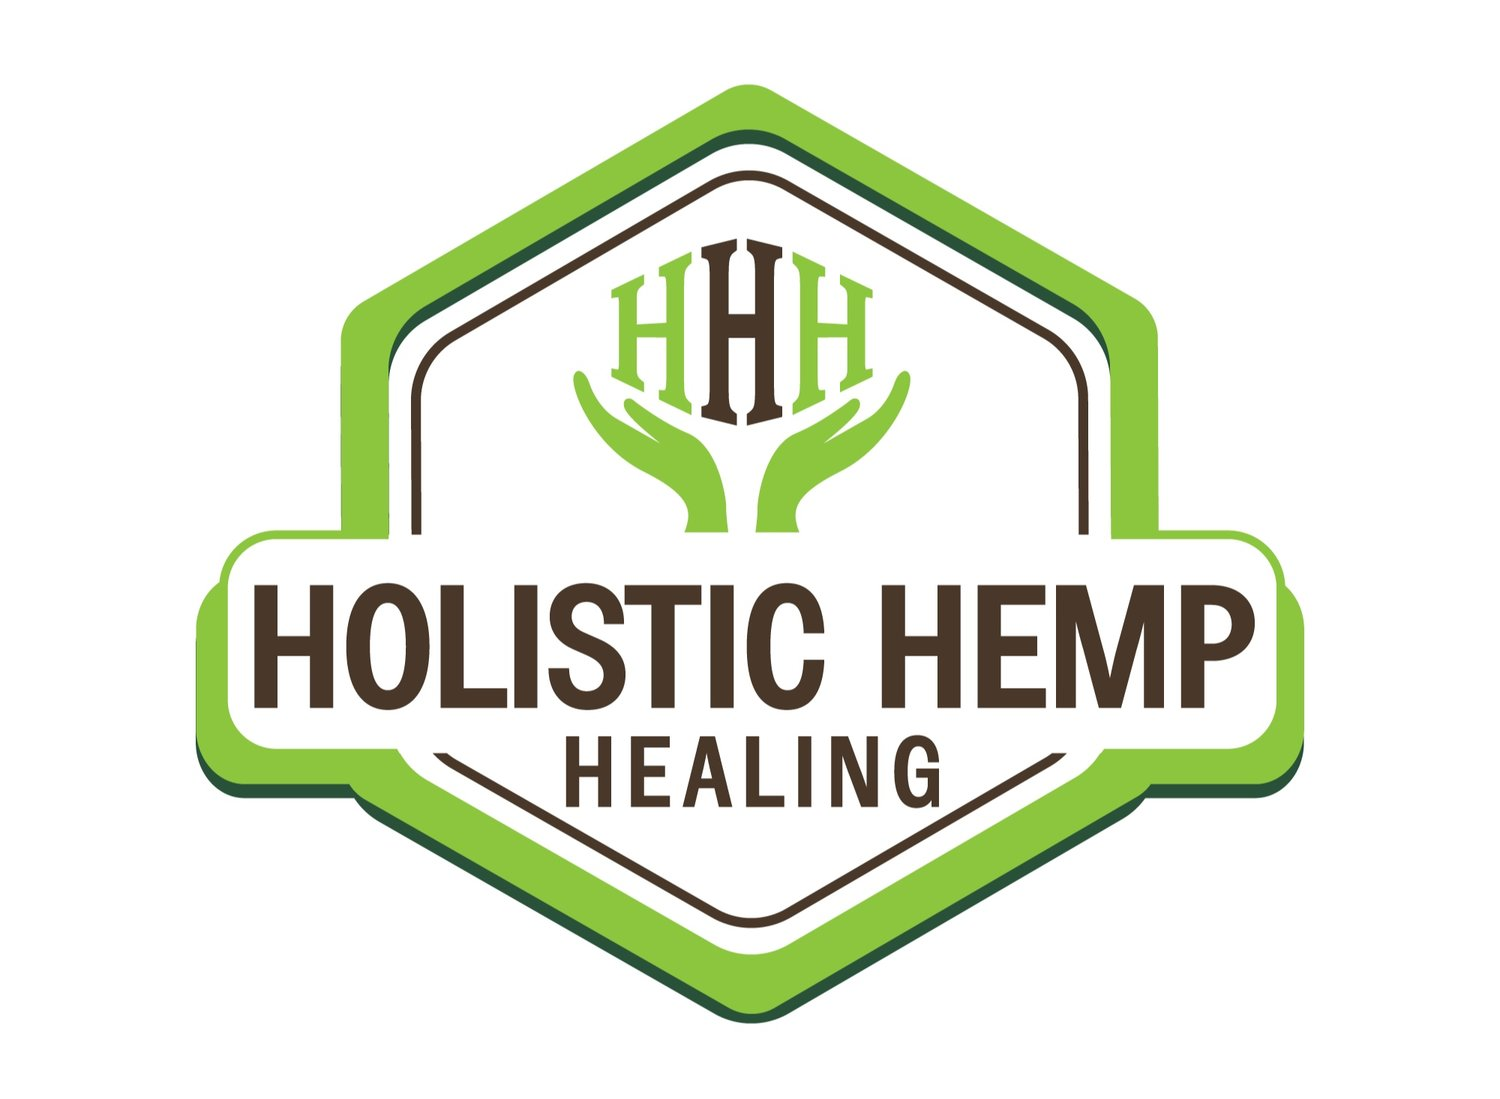 Holistic Hemp Healing - Natural CBD Wellness Products